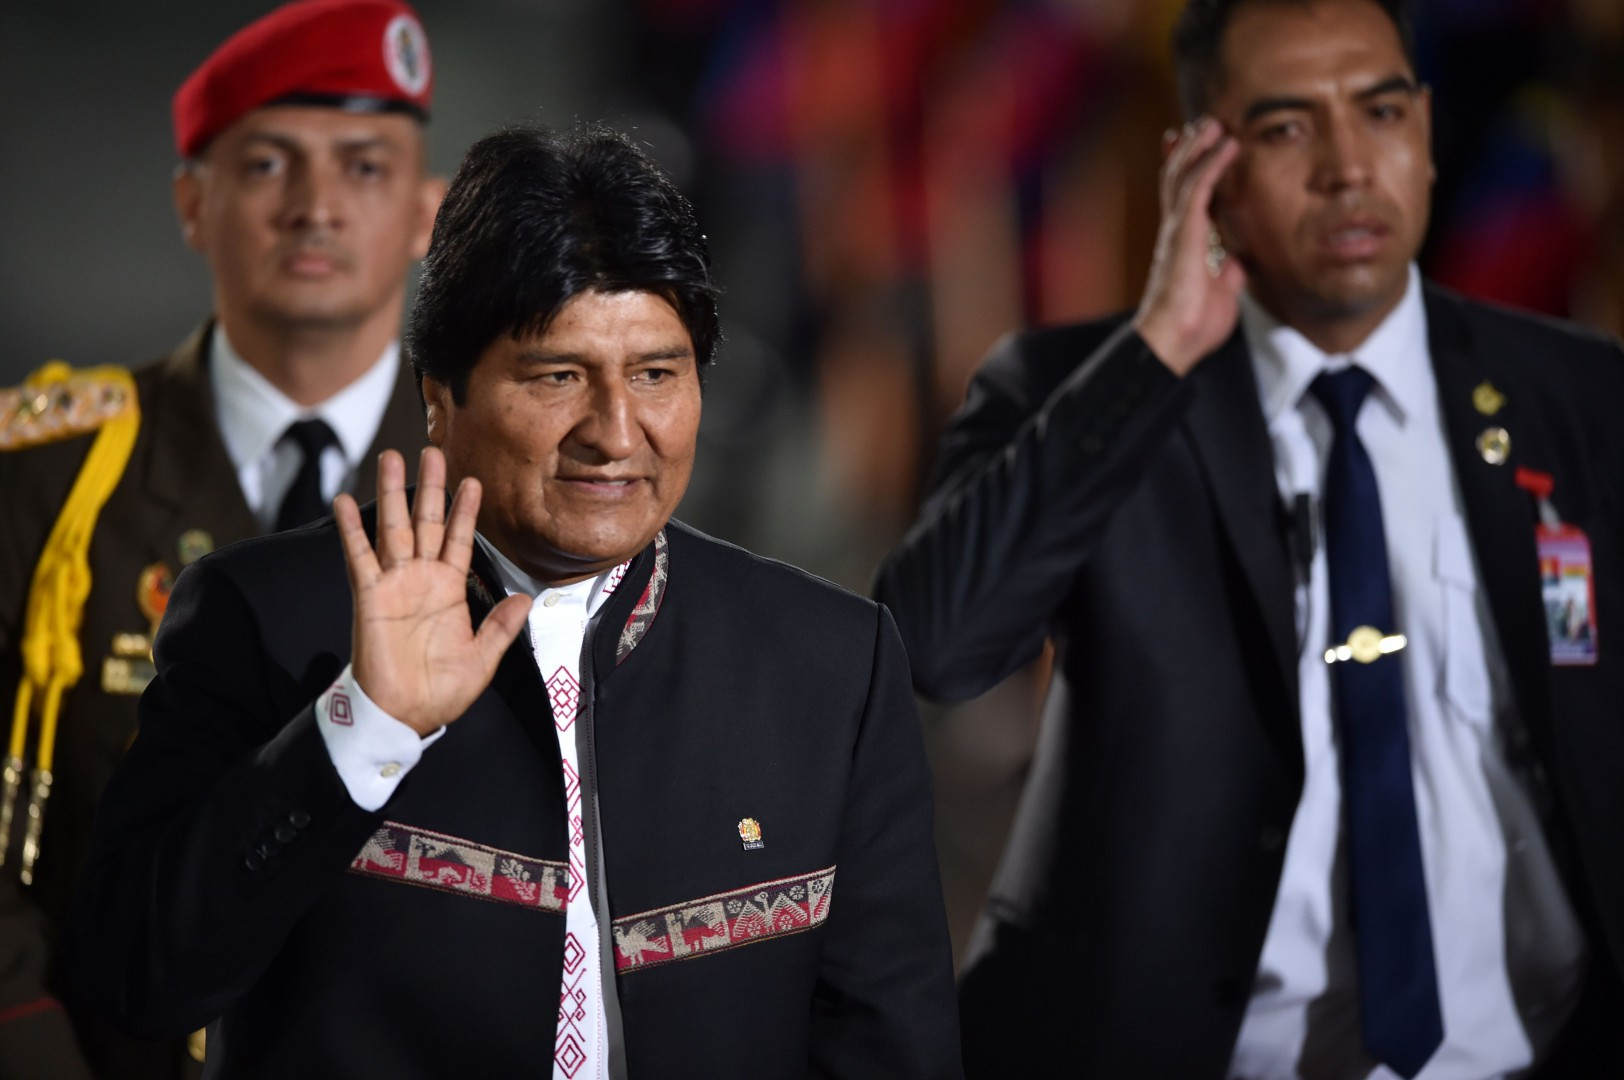 Bolivia's Presidenrt Evo Morales waves upon arrival for the inauguration ceremony of Venezuela's President Nicolas Maduro second mandate, at the Supreme Court of Justice (TSJ) in Caracas on January 10, 2019. - Maduro begins a new term that critics dismiss as illegitimate, with the economy in free fall and the country more isolated than ever. (Photo by YURI CORTEZ / AFP)